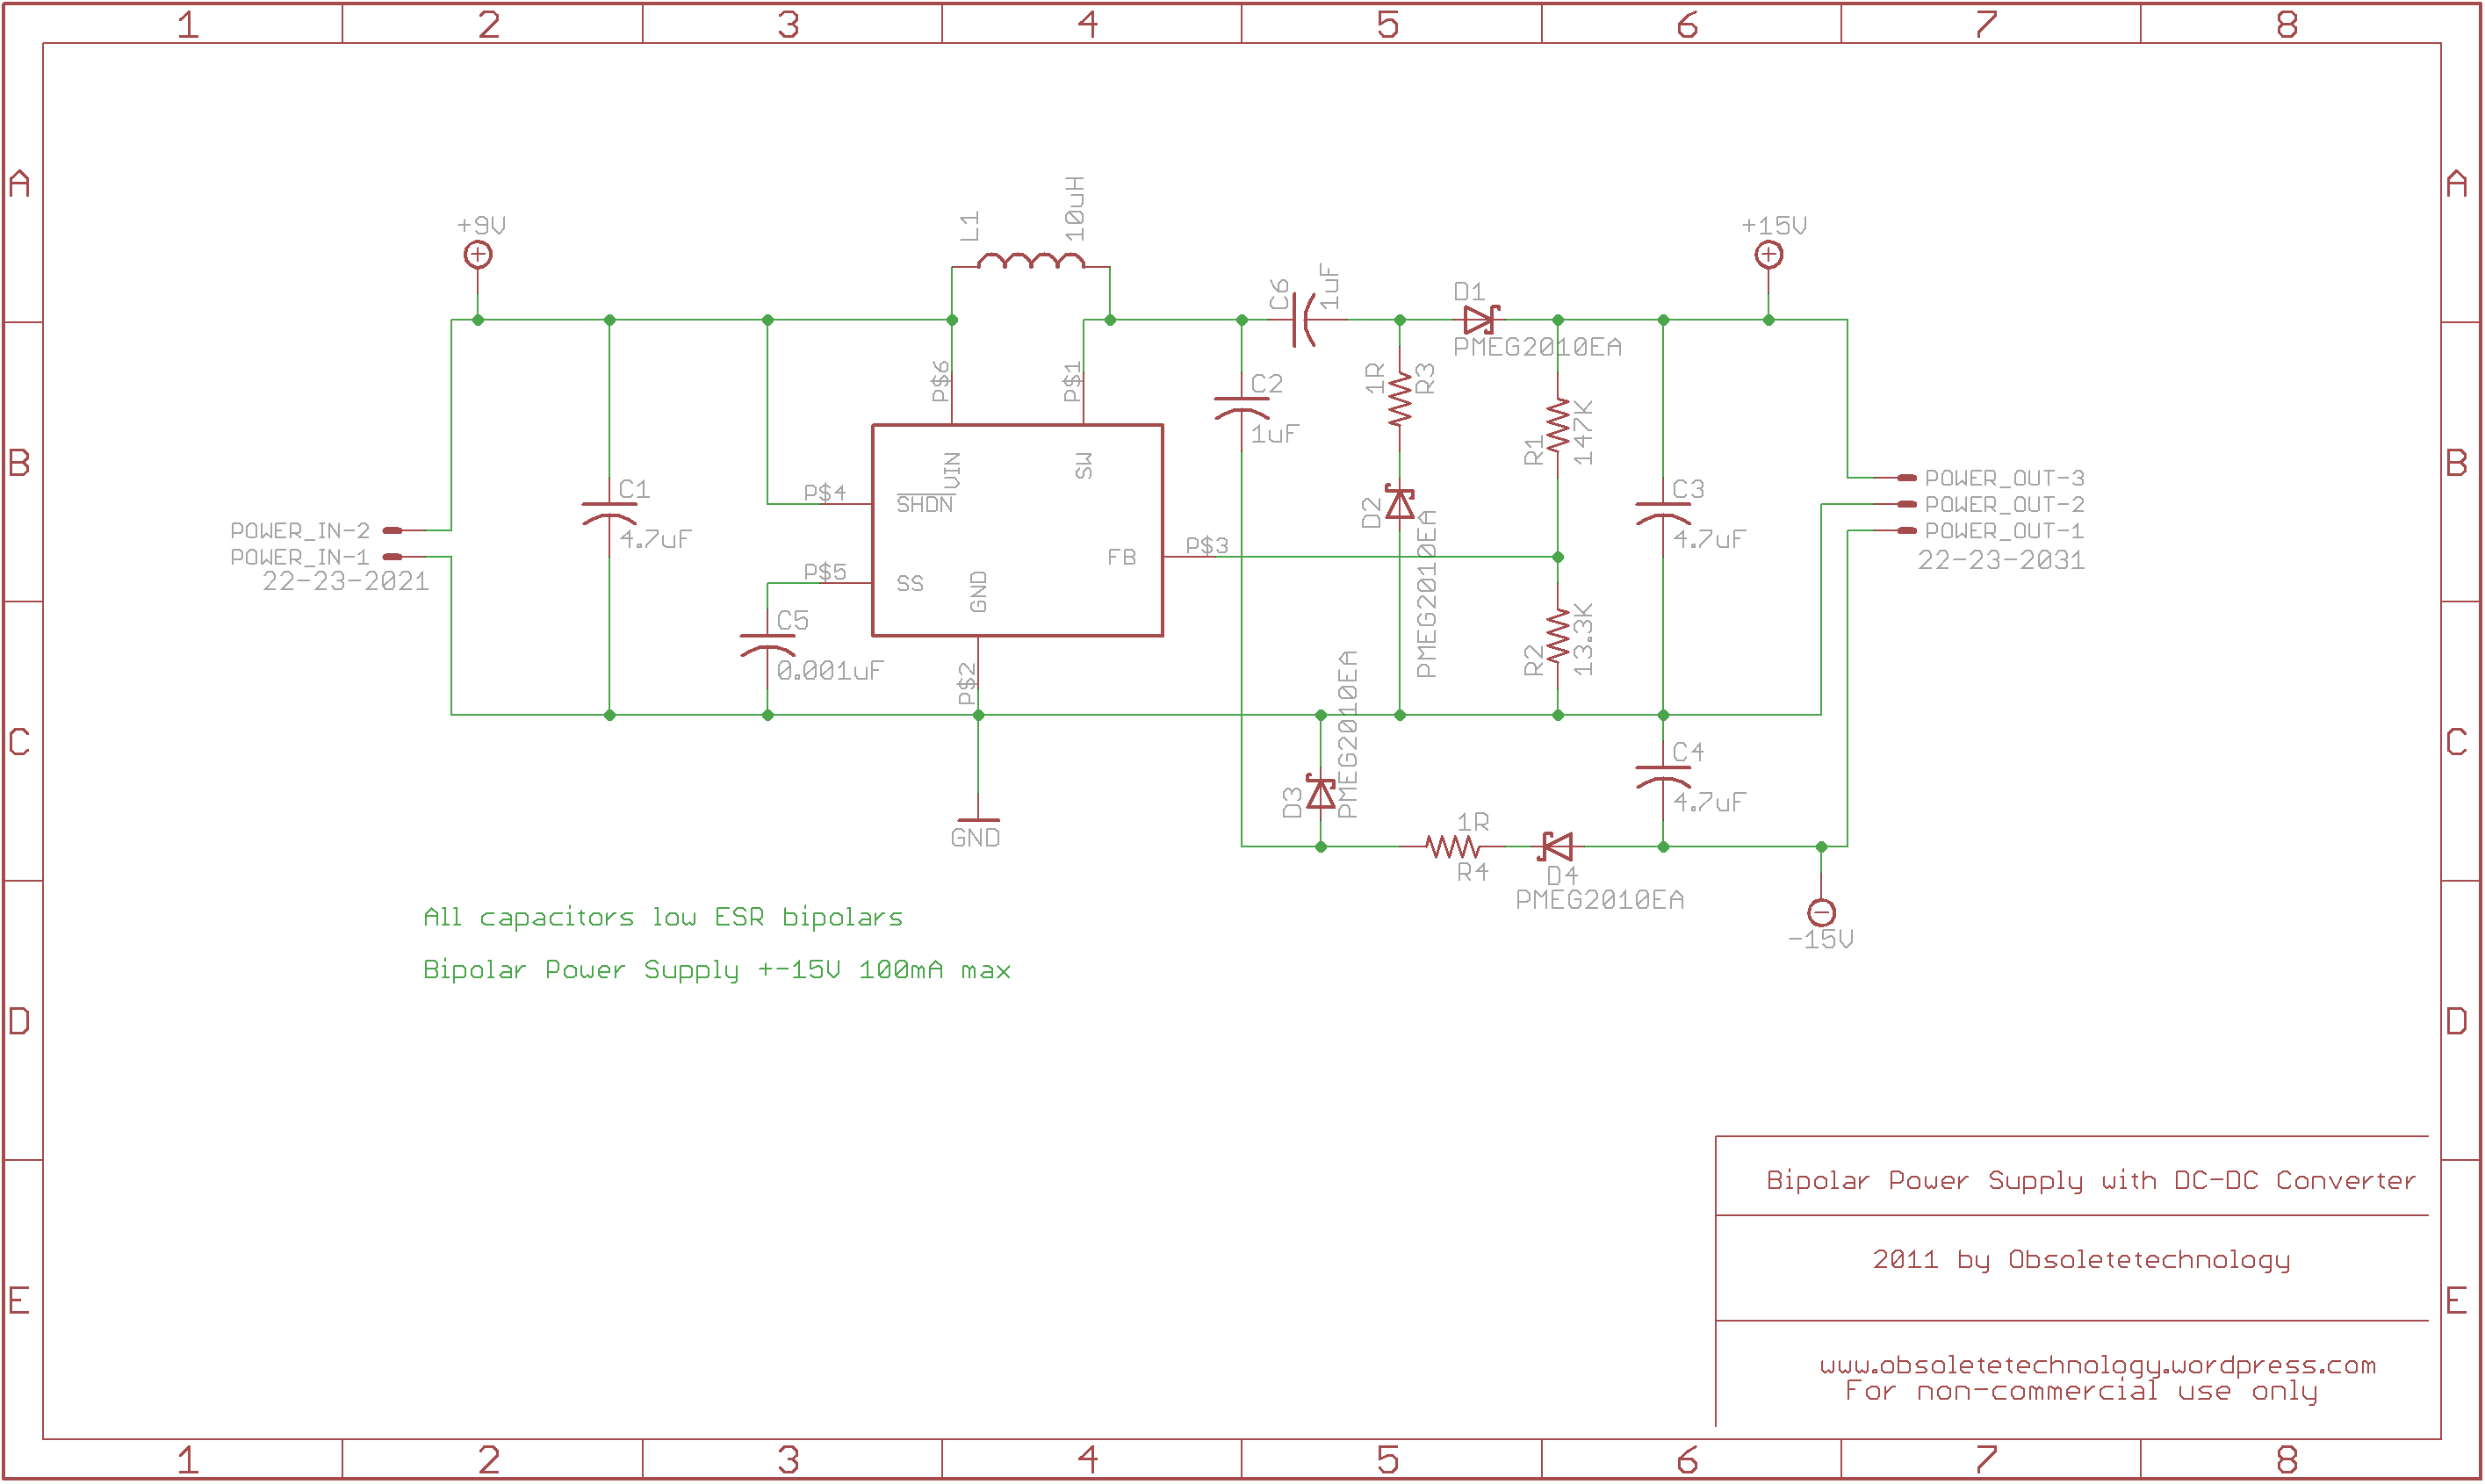 15v Power Supply Circuit Diagram 15v Power Supply With Dc-dc